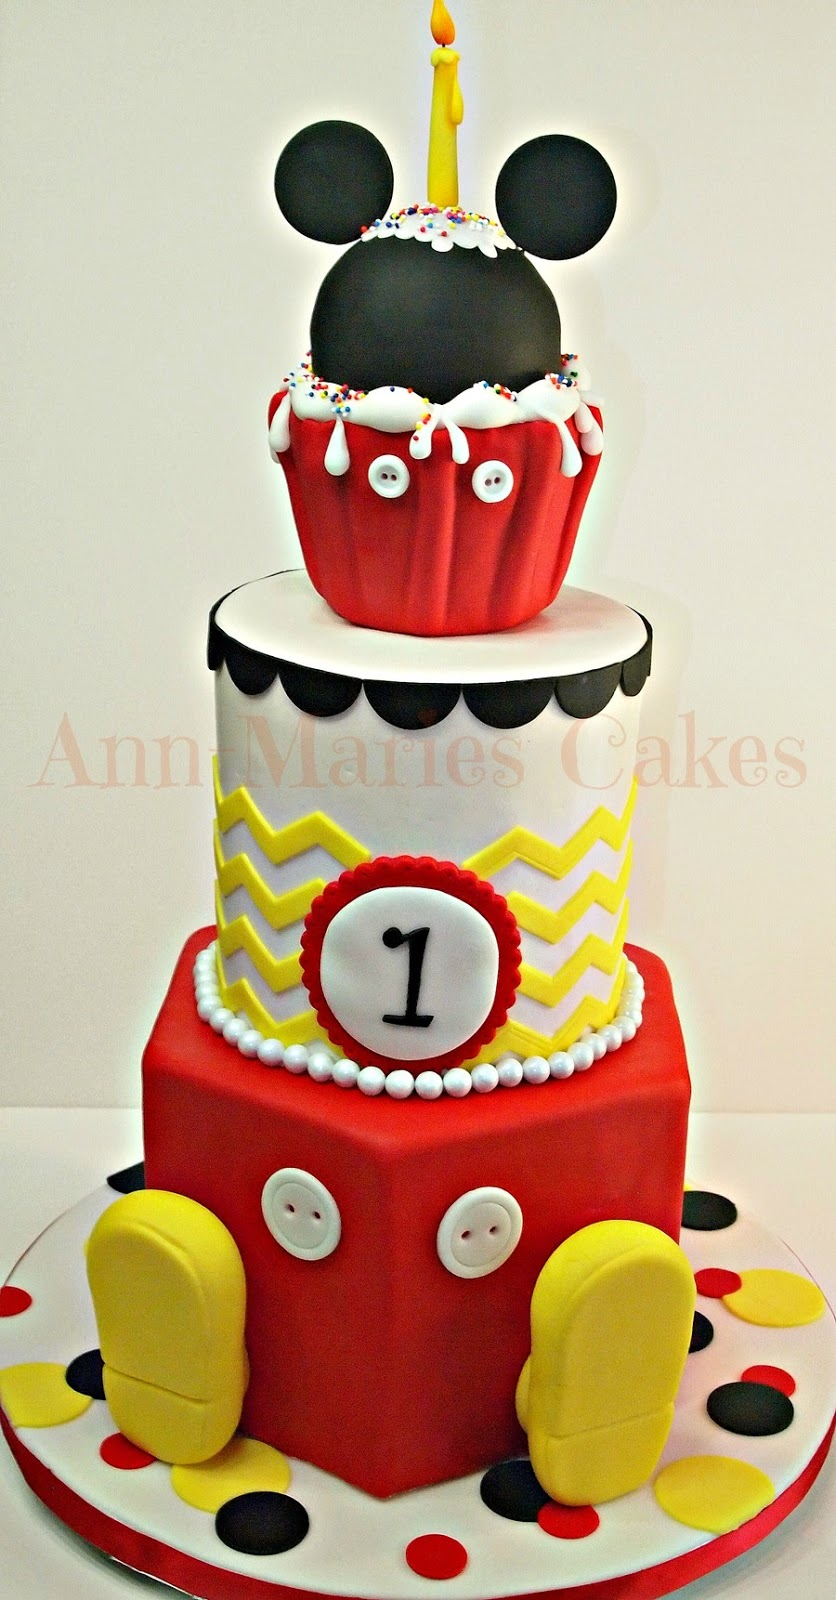 Birthday Cake Pictures Of Mickey Mouse : The Sensational Cakes: MICKEY AND MINNIE THEME BIRTHDAY ...